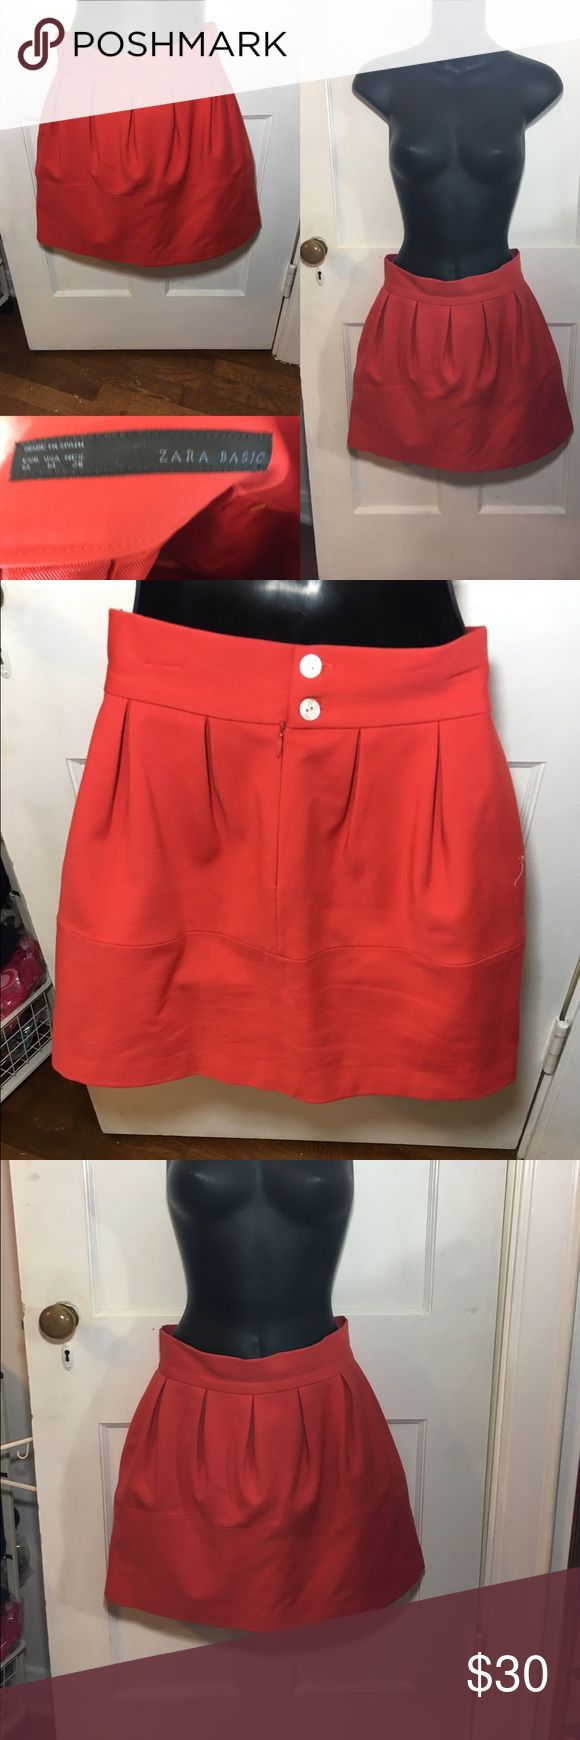 NWOT Burnt Orange 🍊 Zara Basic Skirt Laying flat length 16in top wasit 13 1/2in and Bottom 20 1/2in   Never worn  -I do not accept offers in the comments so please make all reasonable offers using the offer button only. :) I WILL ALWAYS MAKE A COUNTEROFFER UNTIL I REACH MY LOWEST PRICE NO DECLINES SOME ITEMS PRICES ARE FIRM  -NO TRADES  -I ship every Monday, Wednesday and Friday   💕Instagram- allisonsbeautyboutique 💕 Your purchase is going to help me graduate community college with as…